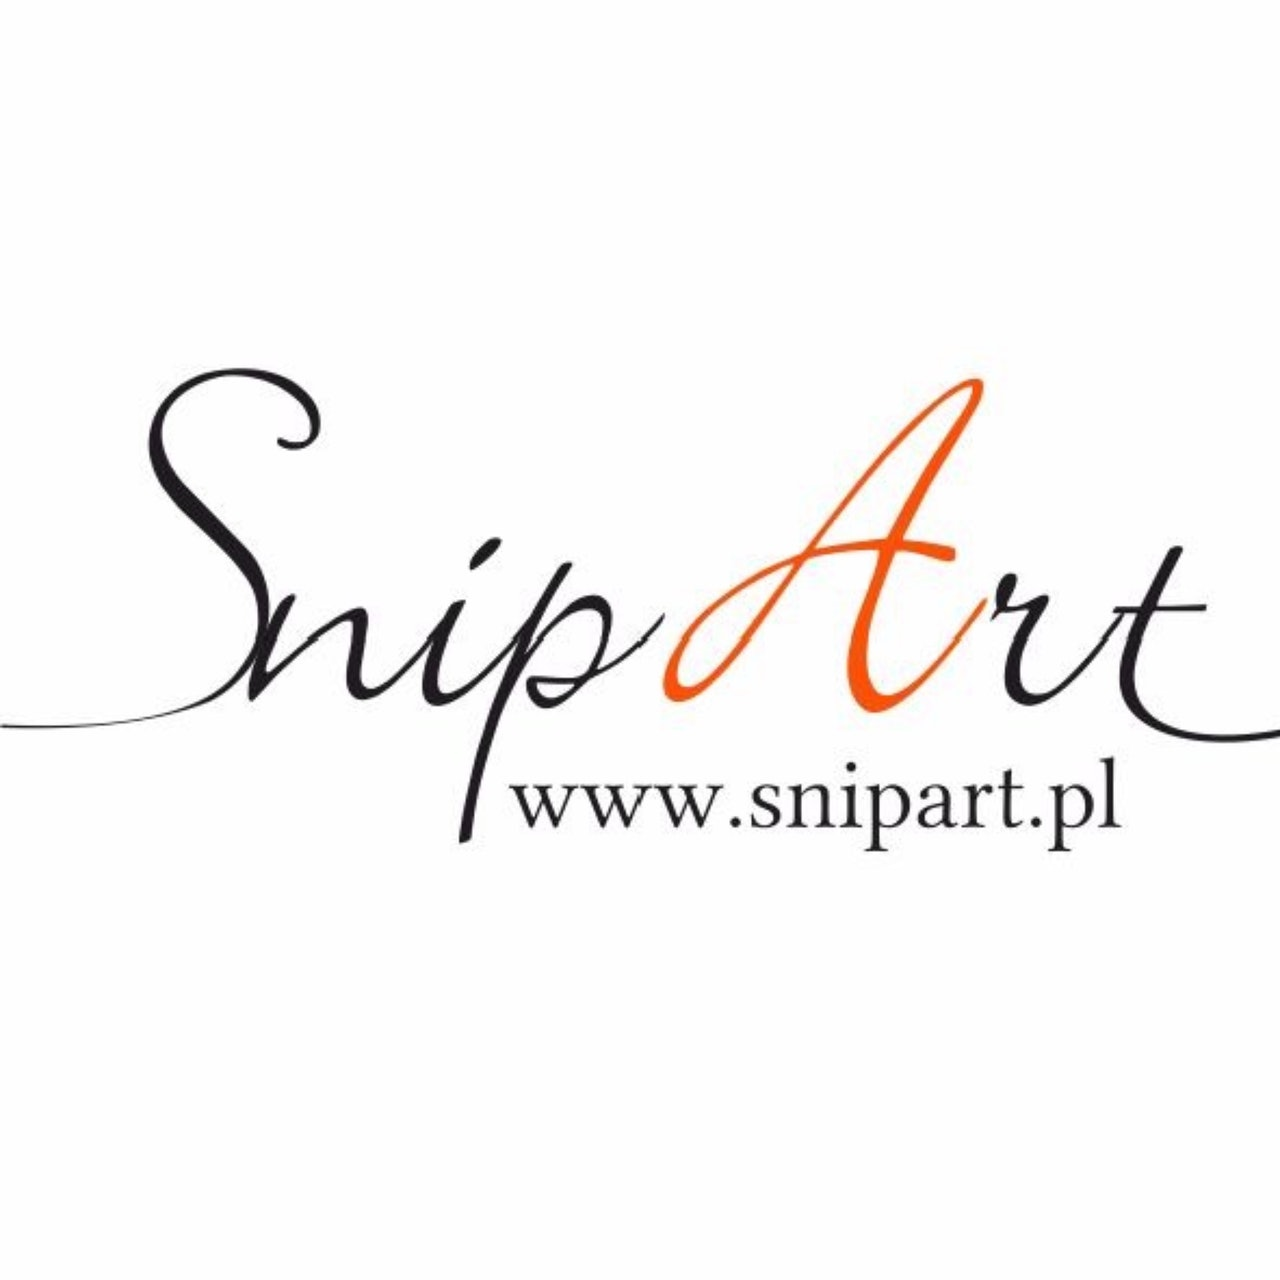 SnipArt